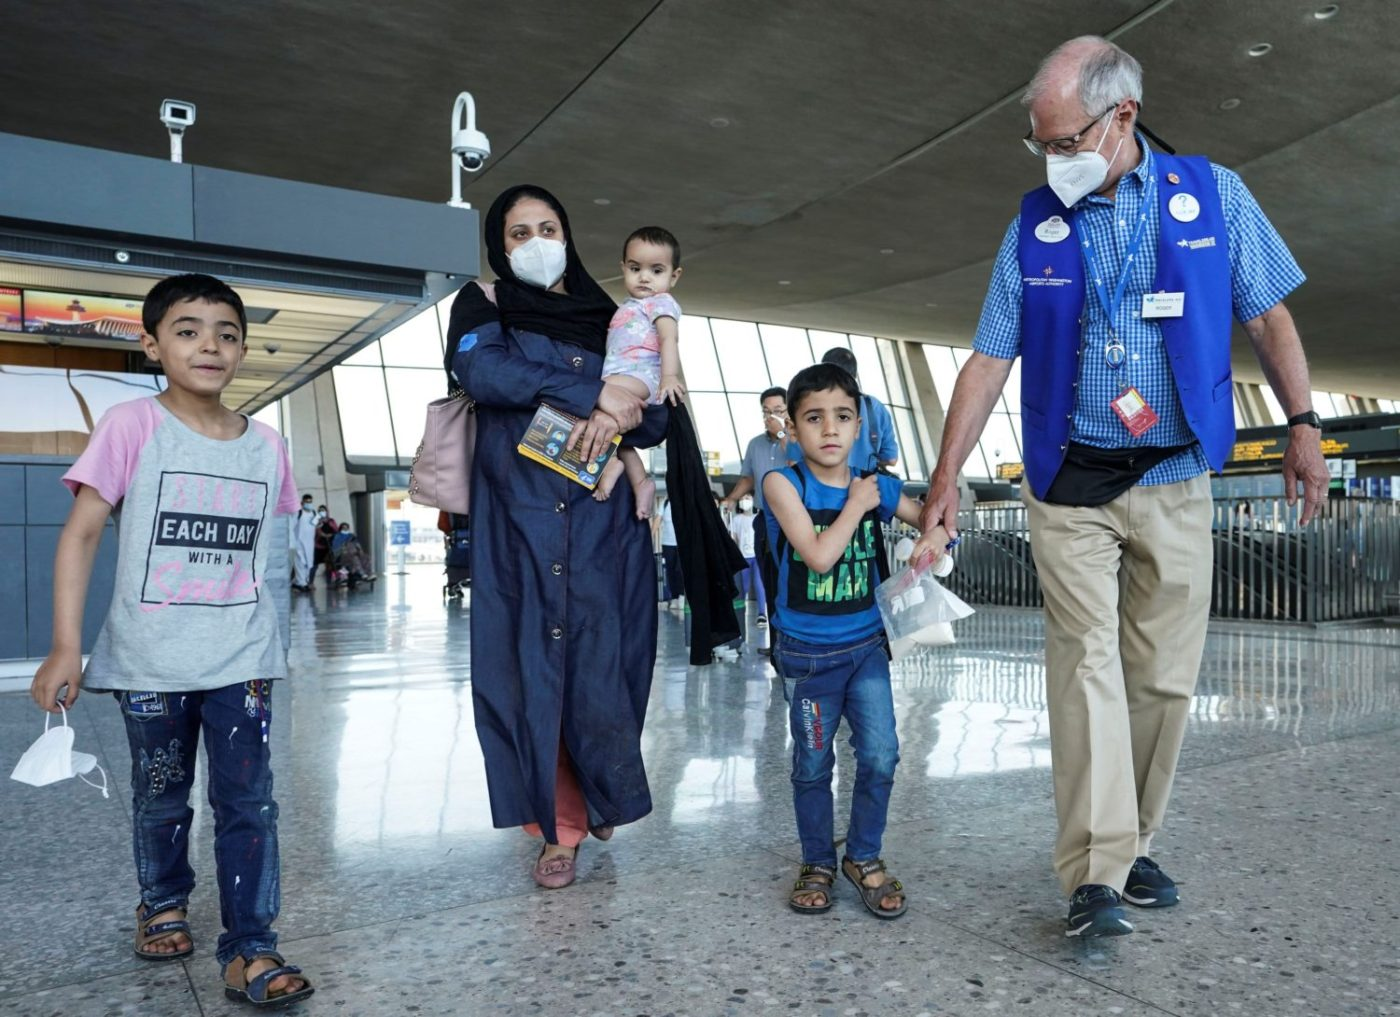 Afghan-refugees-arrive-at-Dulles-International-Airport-082521-by-Kevin-Lamarque-Reuters-1400x1017, Abuse of refugees exposes the White House's long-standing policy towards Haiti, World News & Views